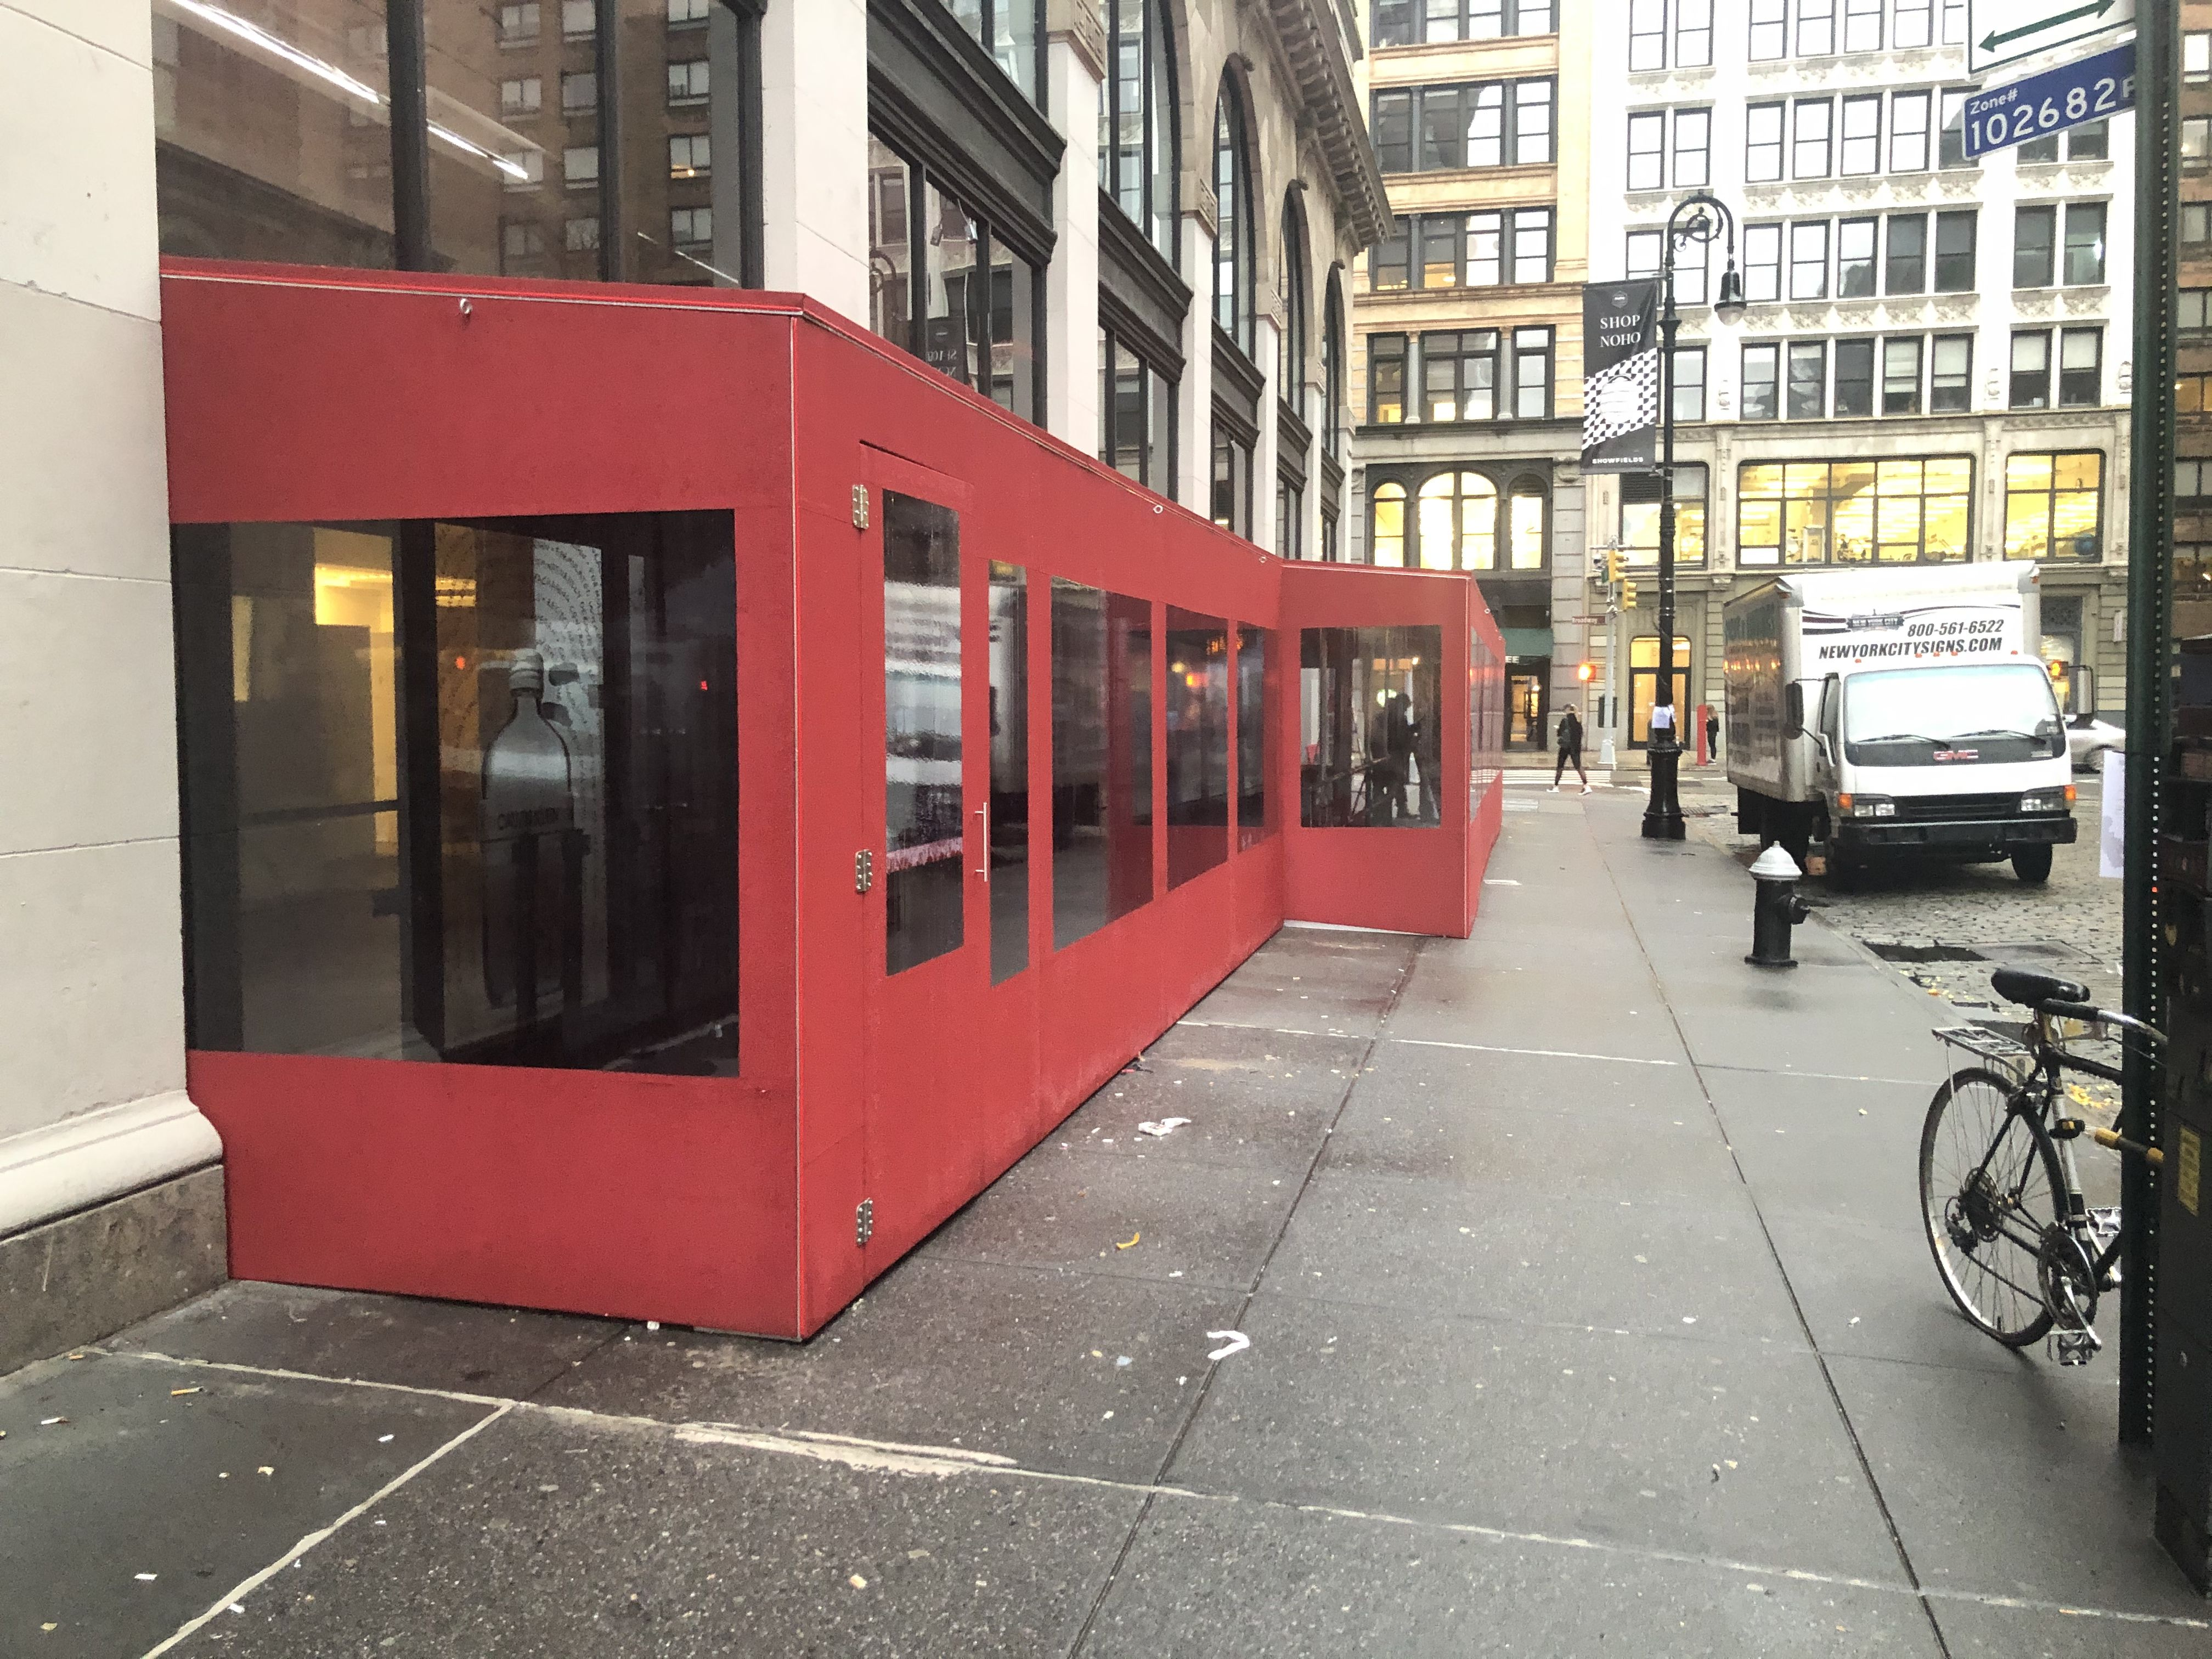 If Your Facility Needs Temporary Space We Can Manufacture Enclosures Barricades Barriers Canopies Retractabl In 2020 Roll Down Shades Enclosures Retractable Awning